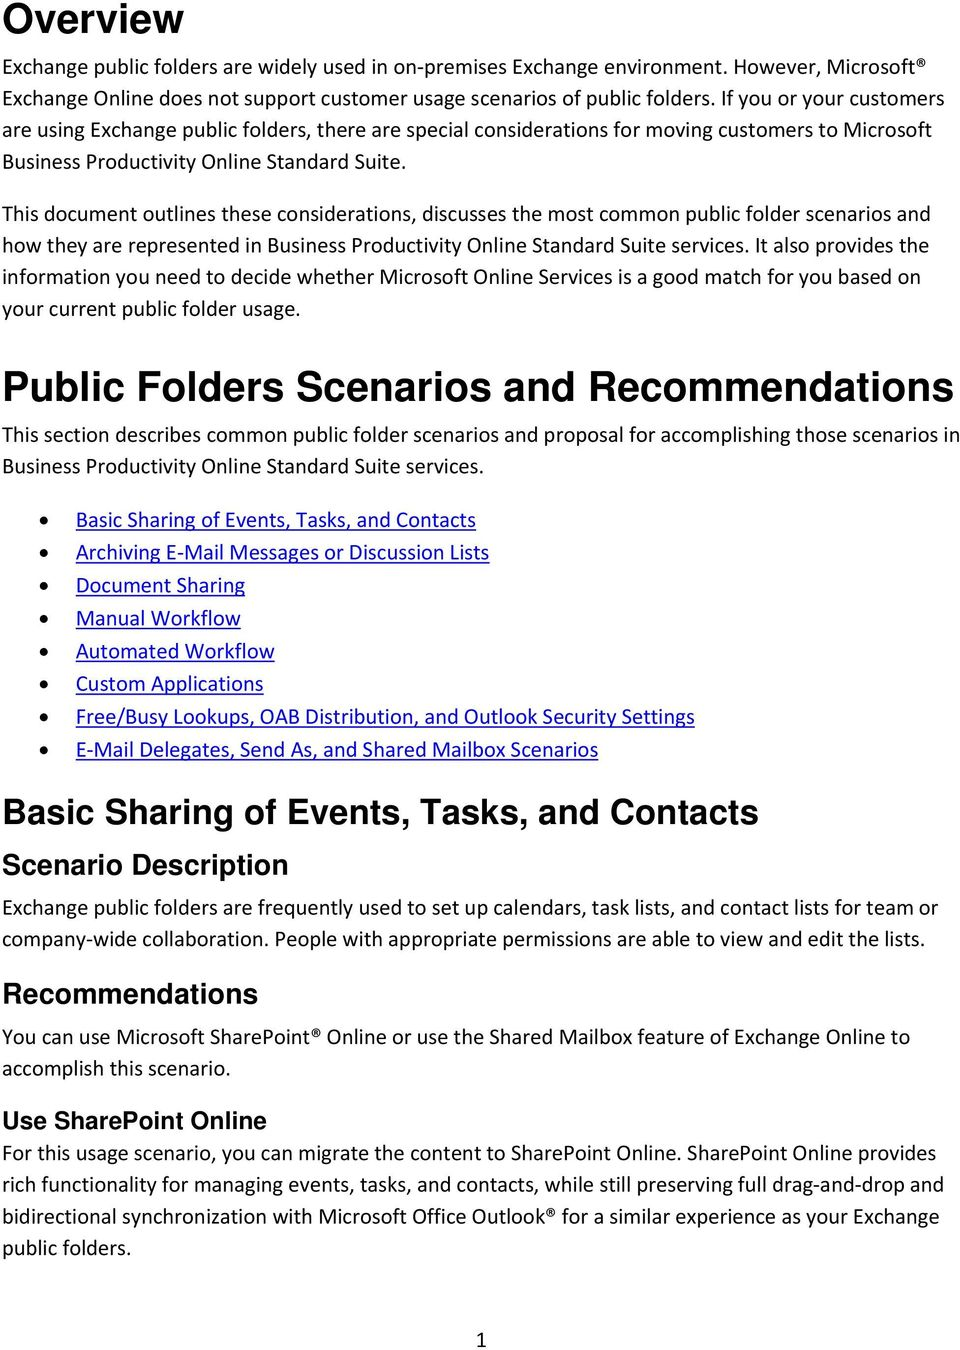 This document outlines these considerations, discusses the most common public folder scenarios and how they are represented in Business Productivity Online Standard Suite services.